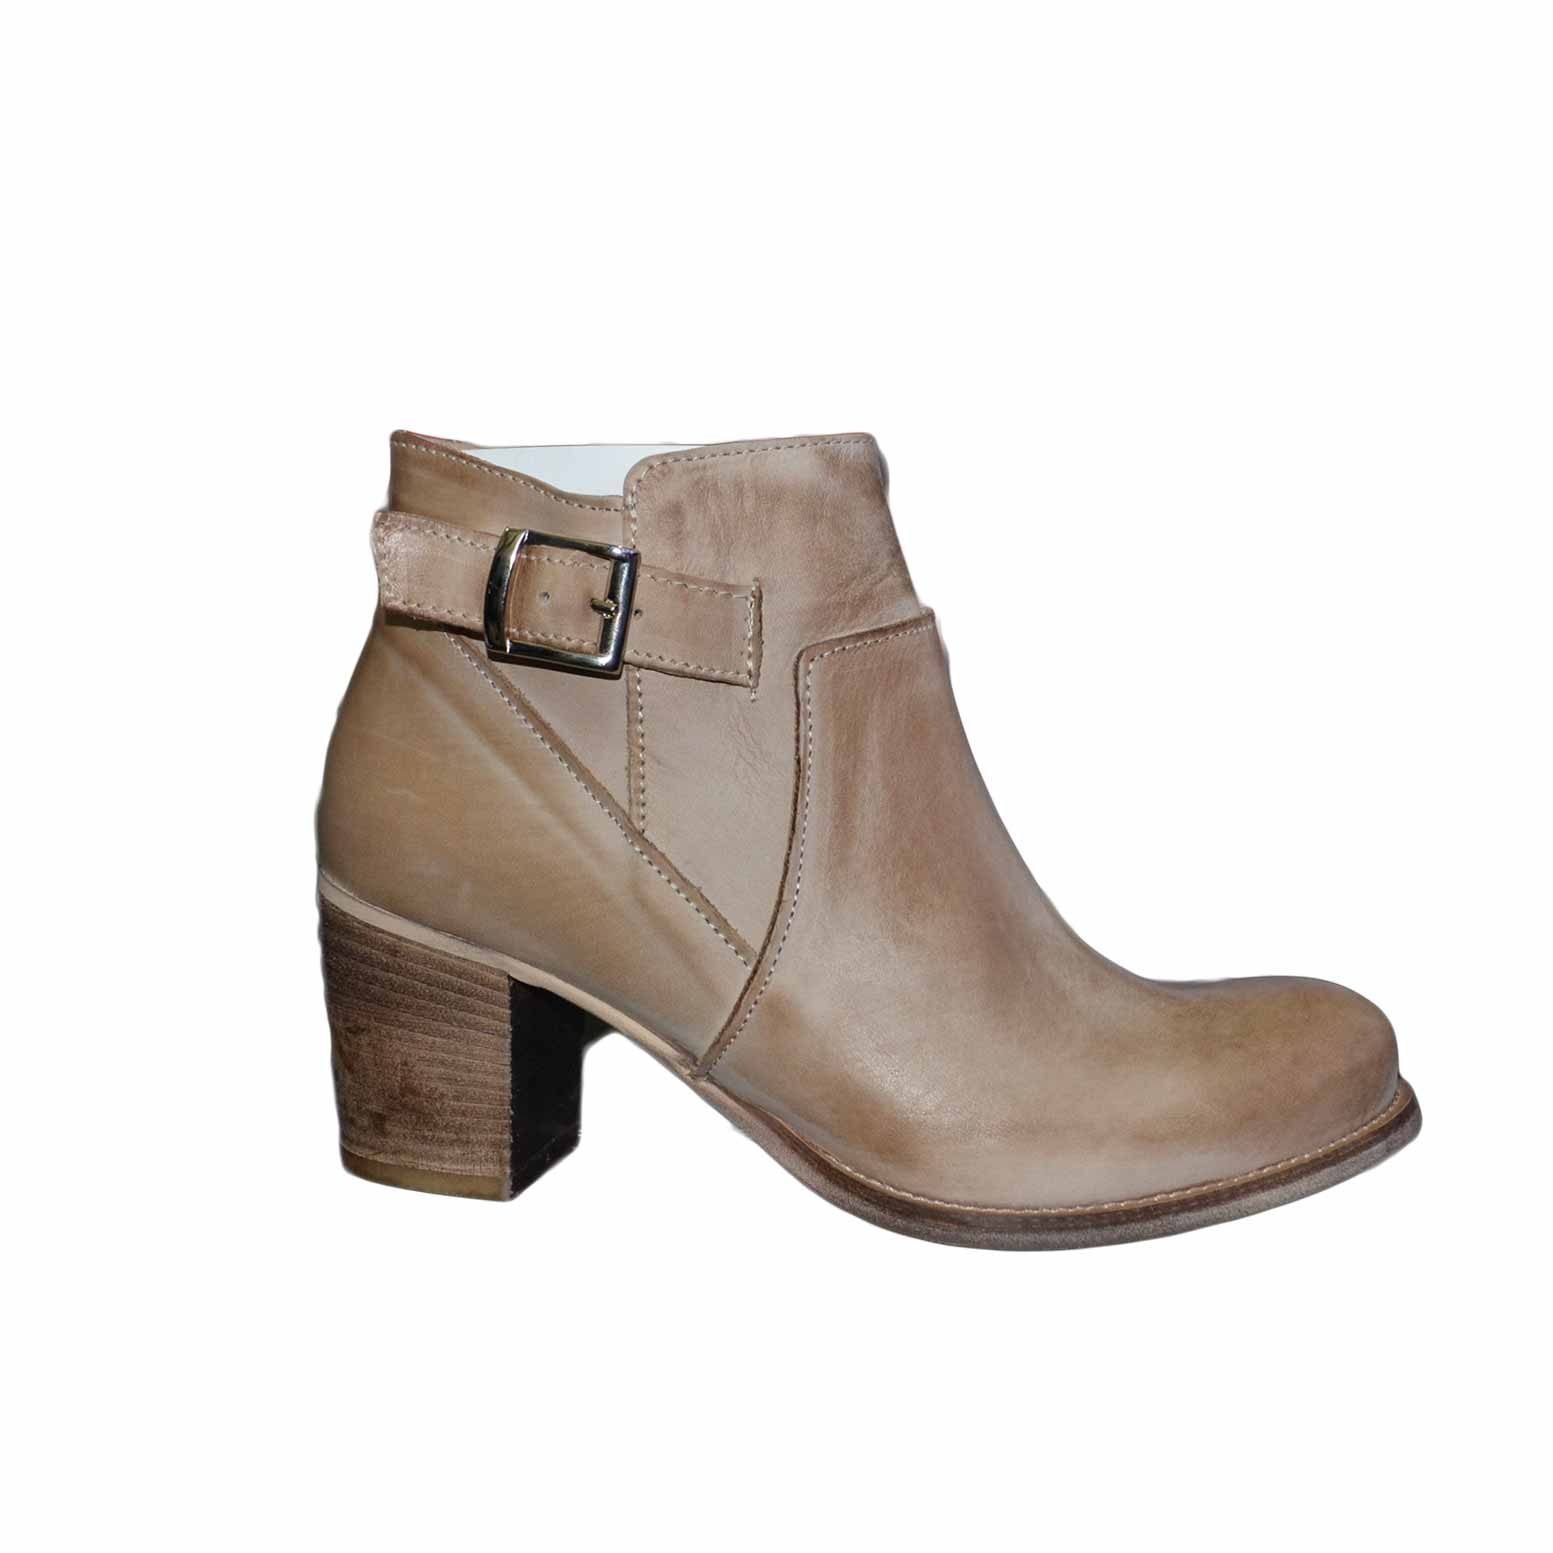 scarpe donna tronchetto made in italy con fibbia e zip latareale vera pelle genuine leather tacco 70 comfort.